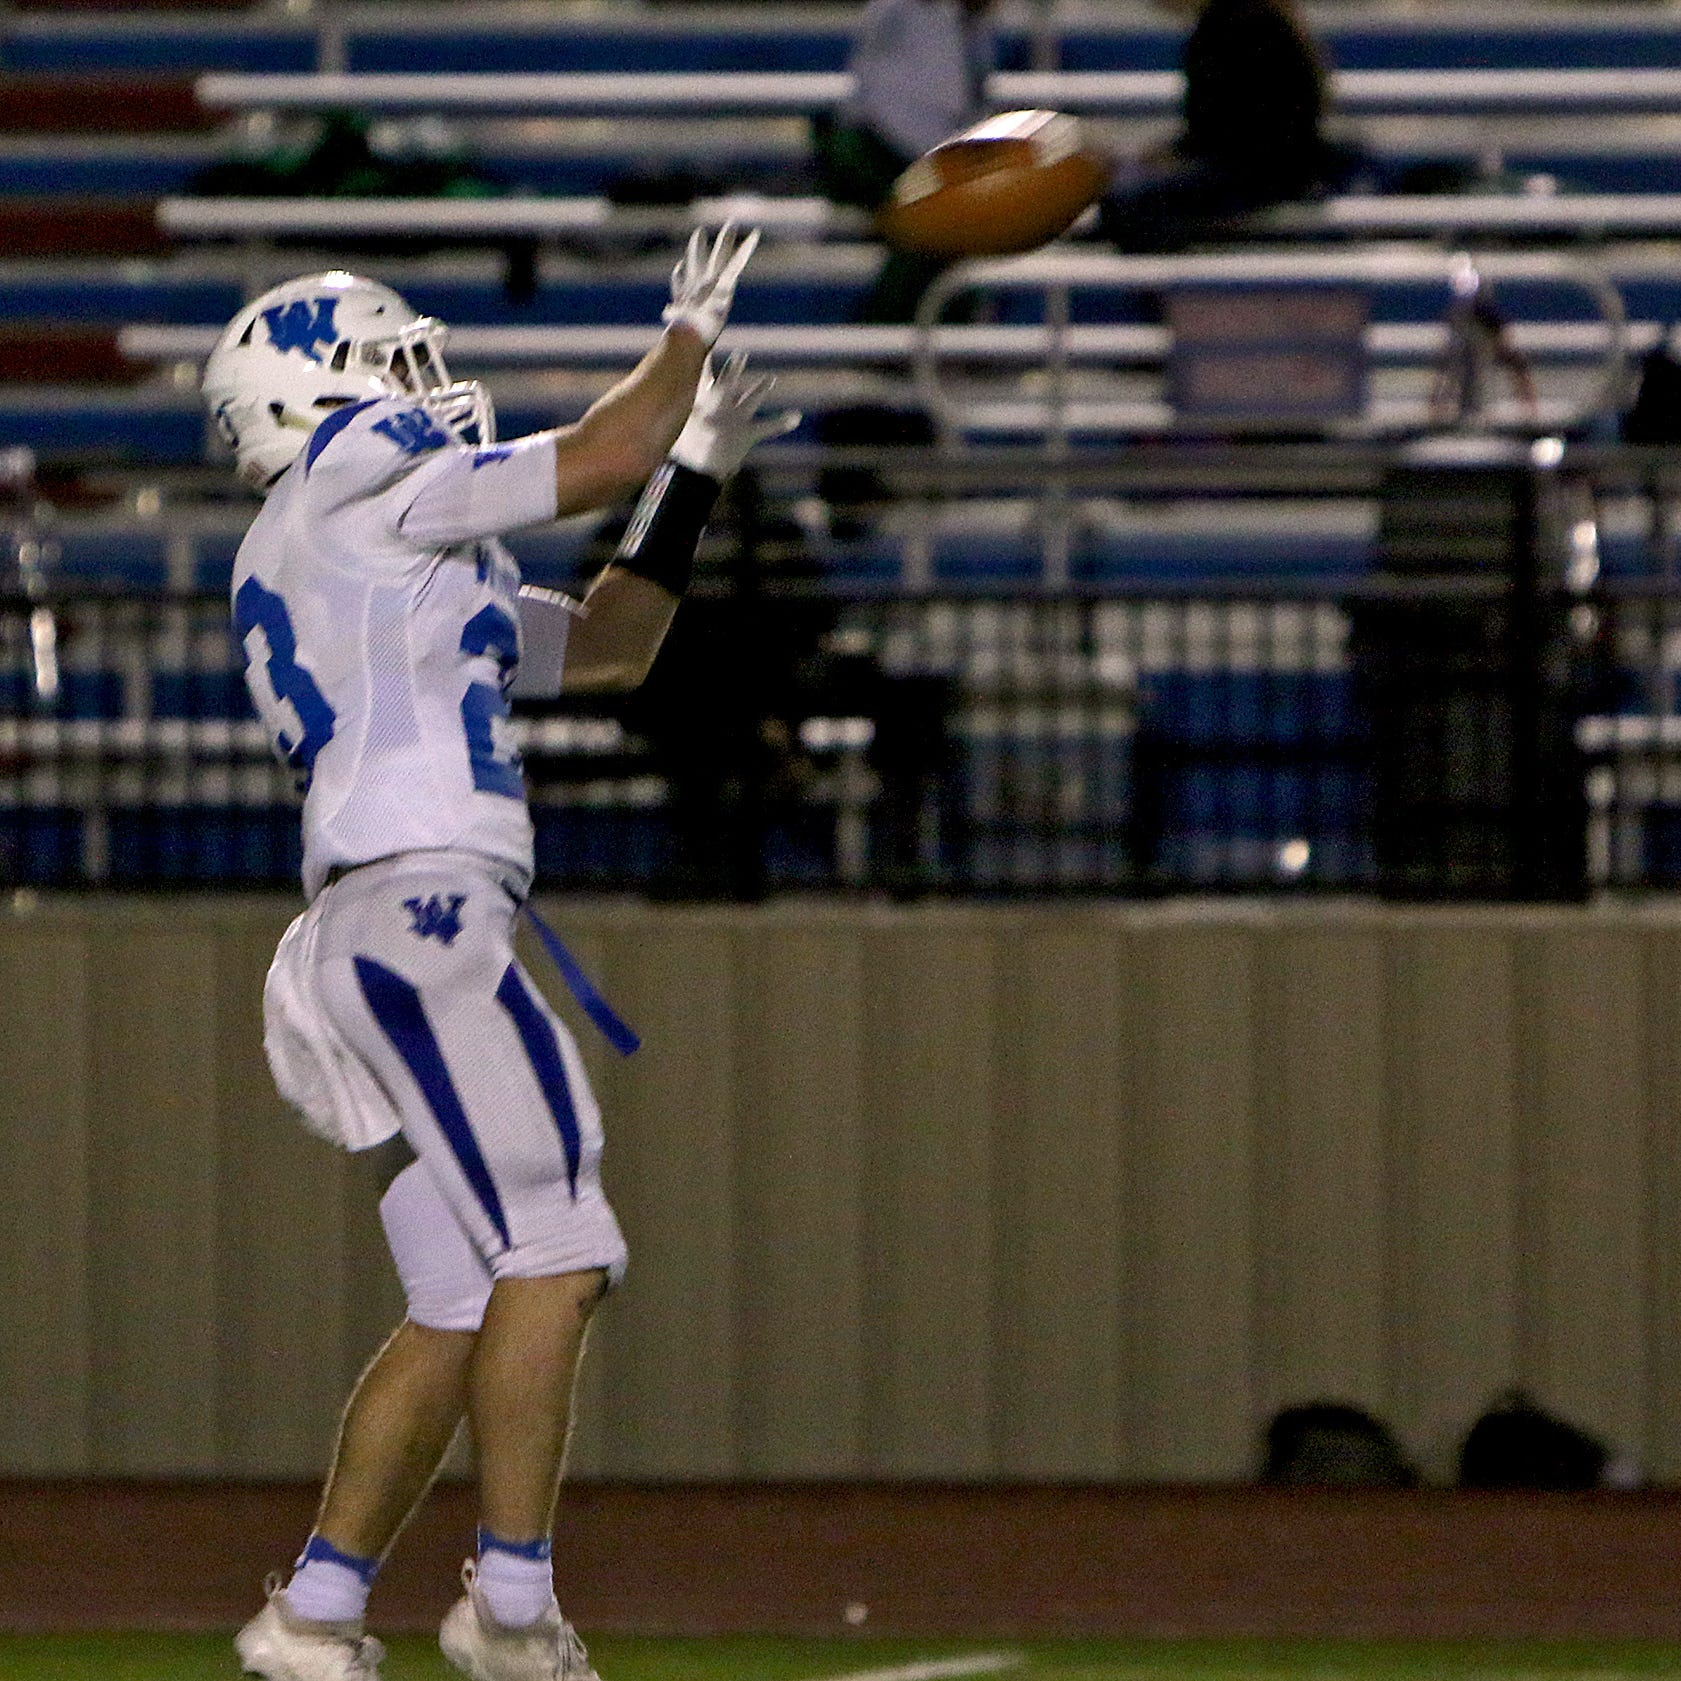 2A AP all-state: Windthorst's Bales leads Wichita Falls area honorees